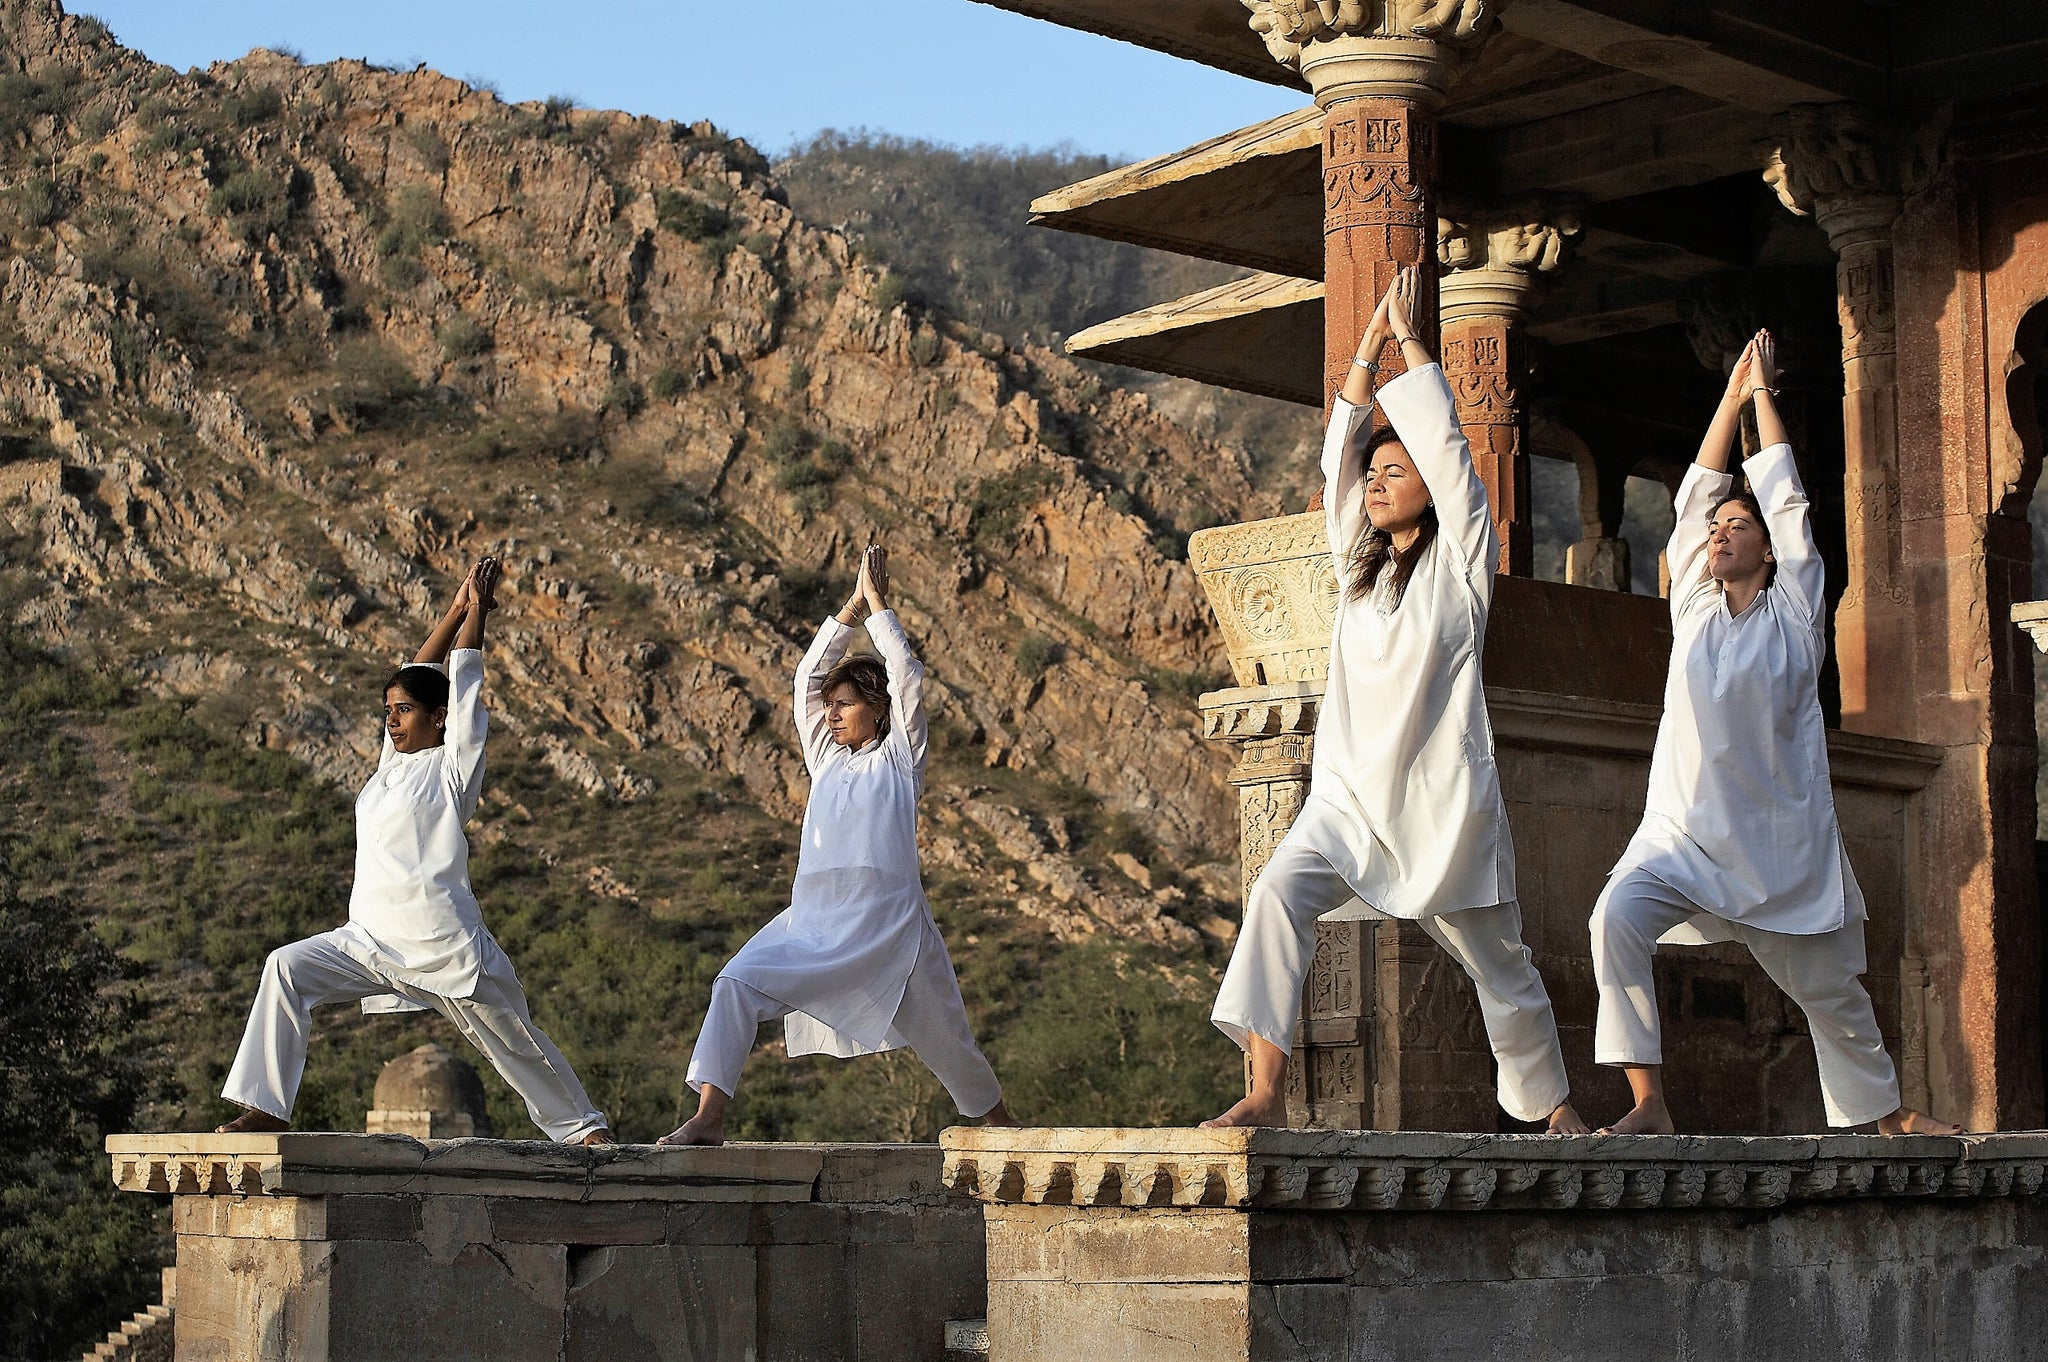 Malavara Top Luxury Ayurveda Retreats - Amanbagh, Rajasthan Yoga